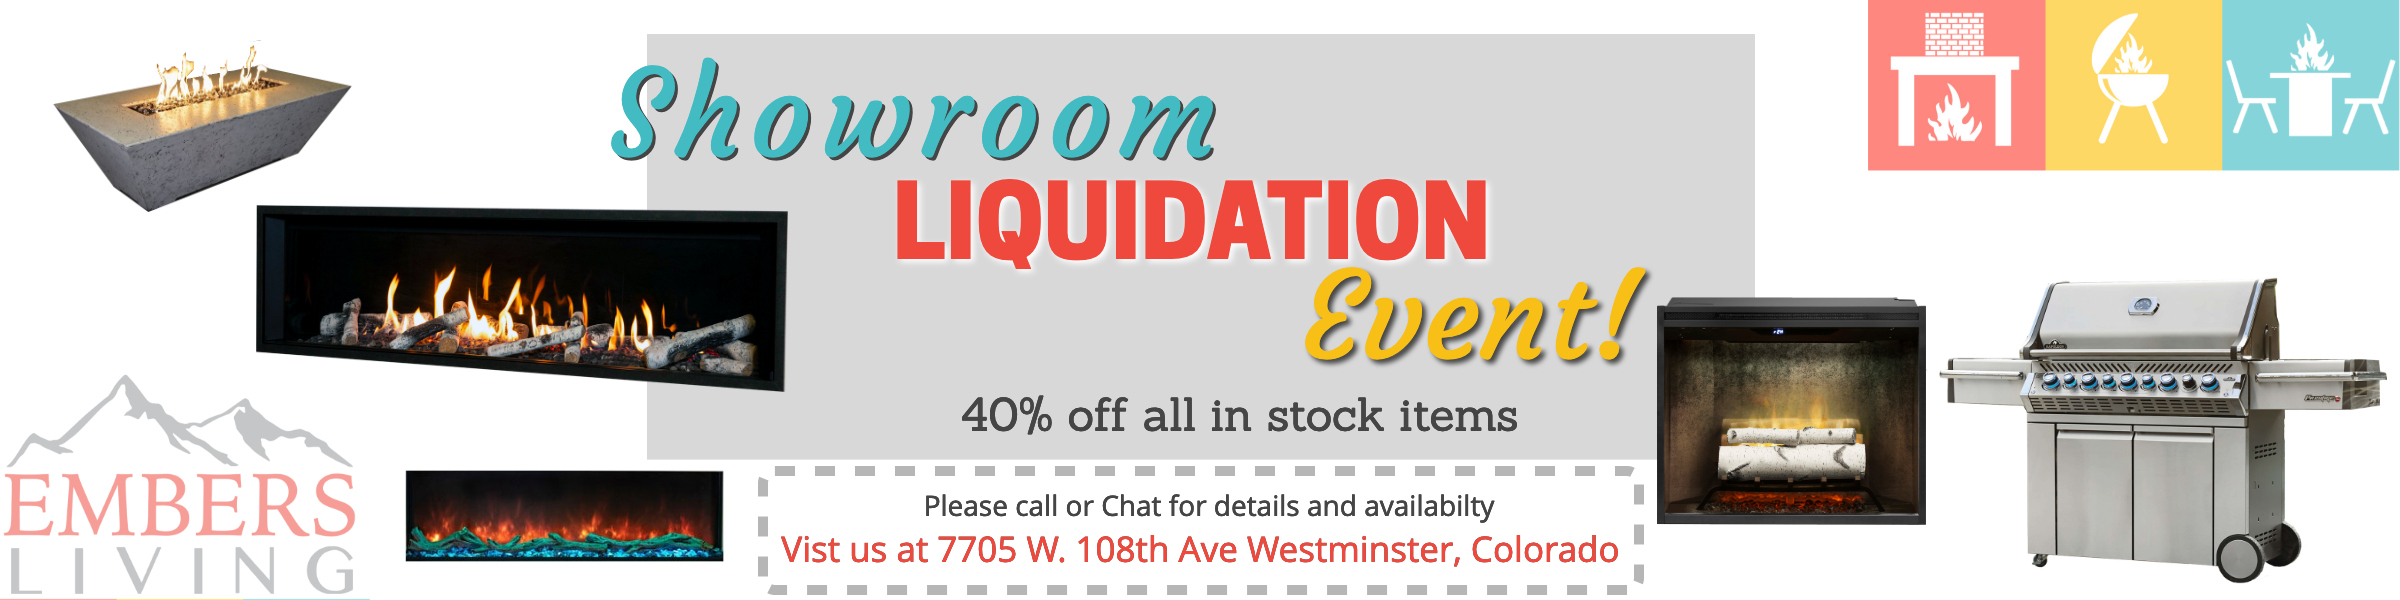 showroom-liquidation-event-1-.png